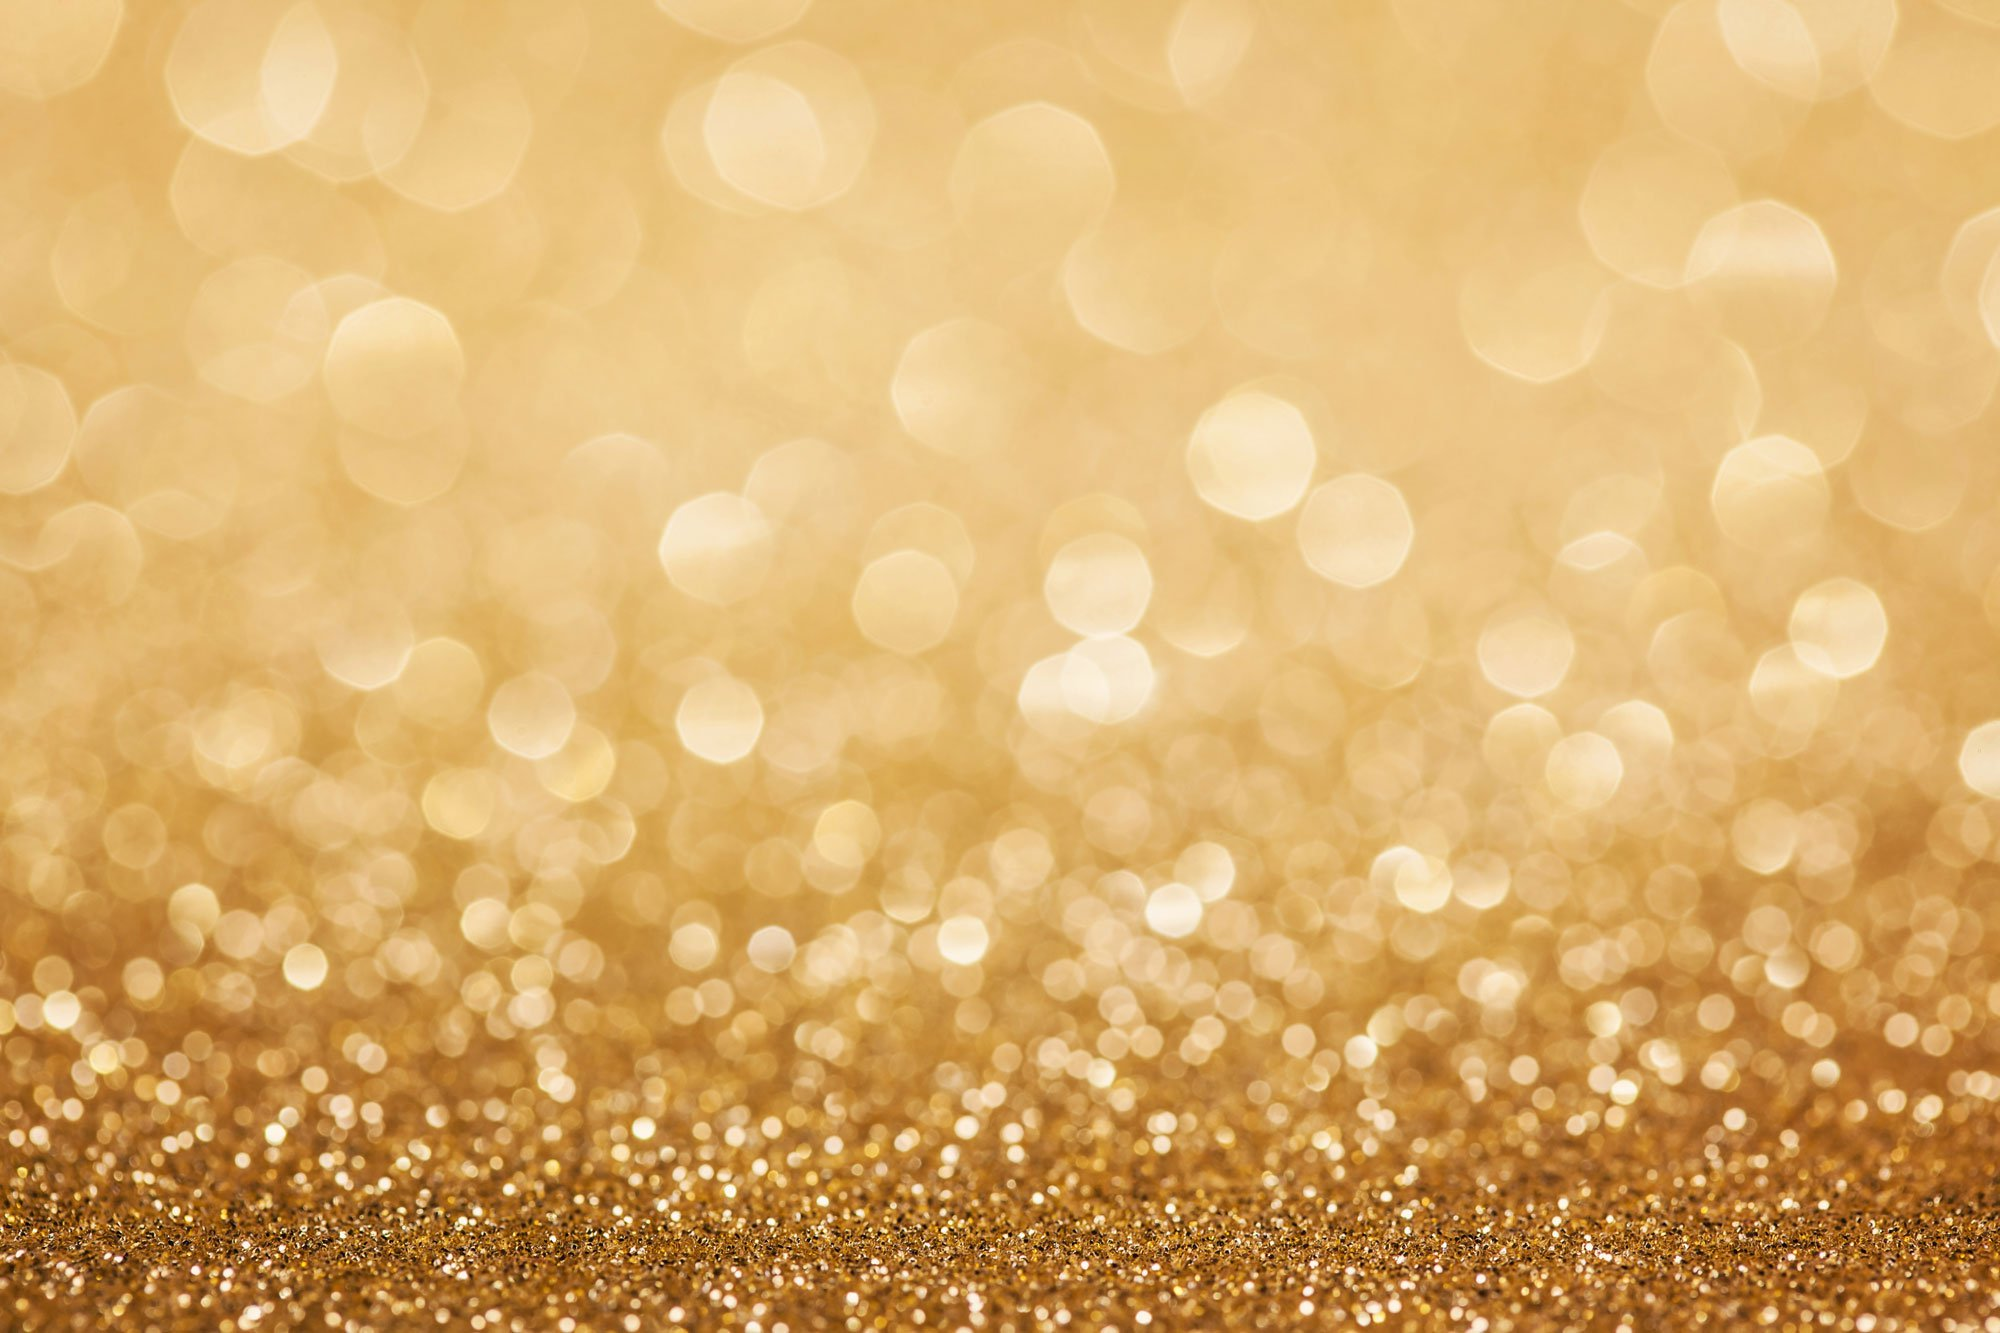 Glitter Background Wallpapers   Unusual Attractions 2000x1333